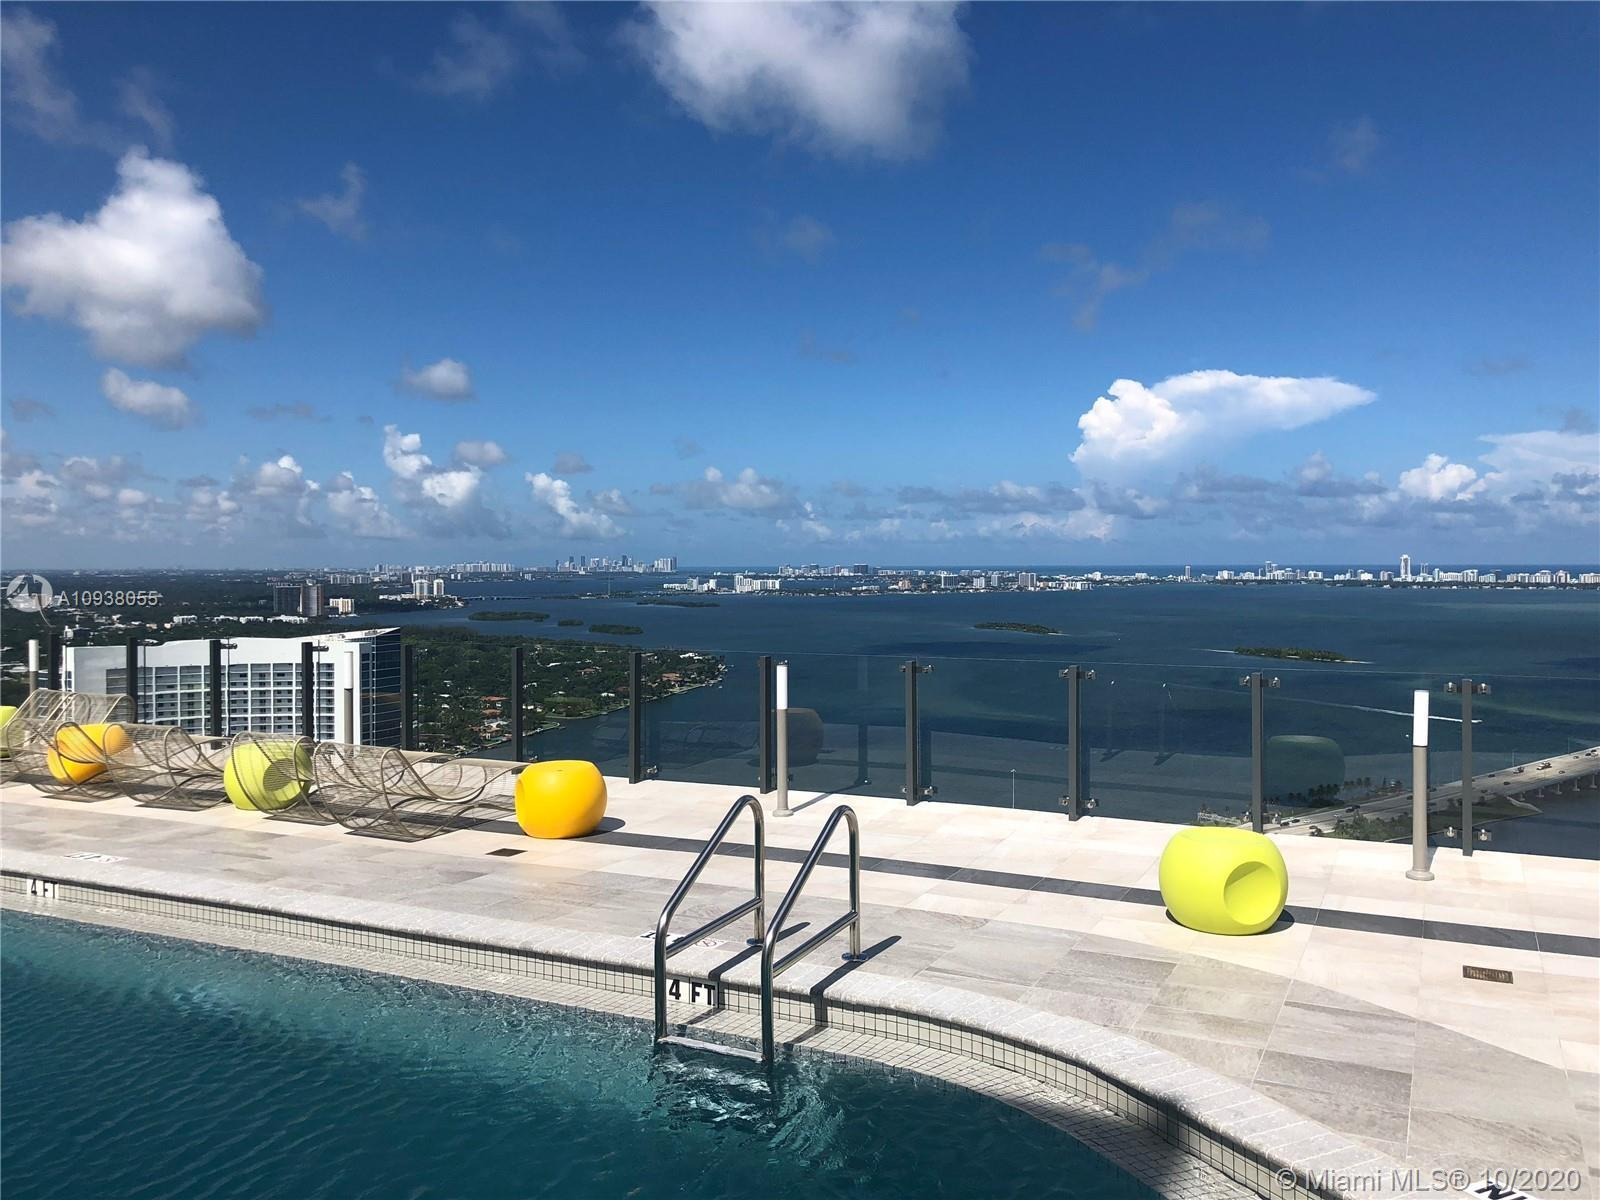 NEW FLOOR, no more carpet!!! Amazing 1 bedroom and 1 1/2 bathroom apartment in the heart of Miami. H